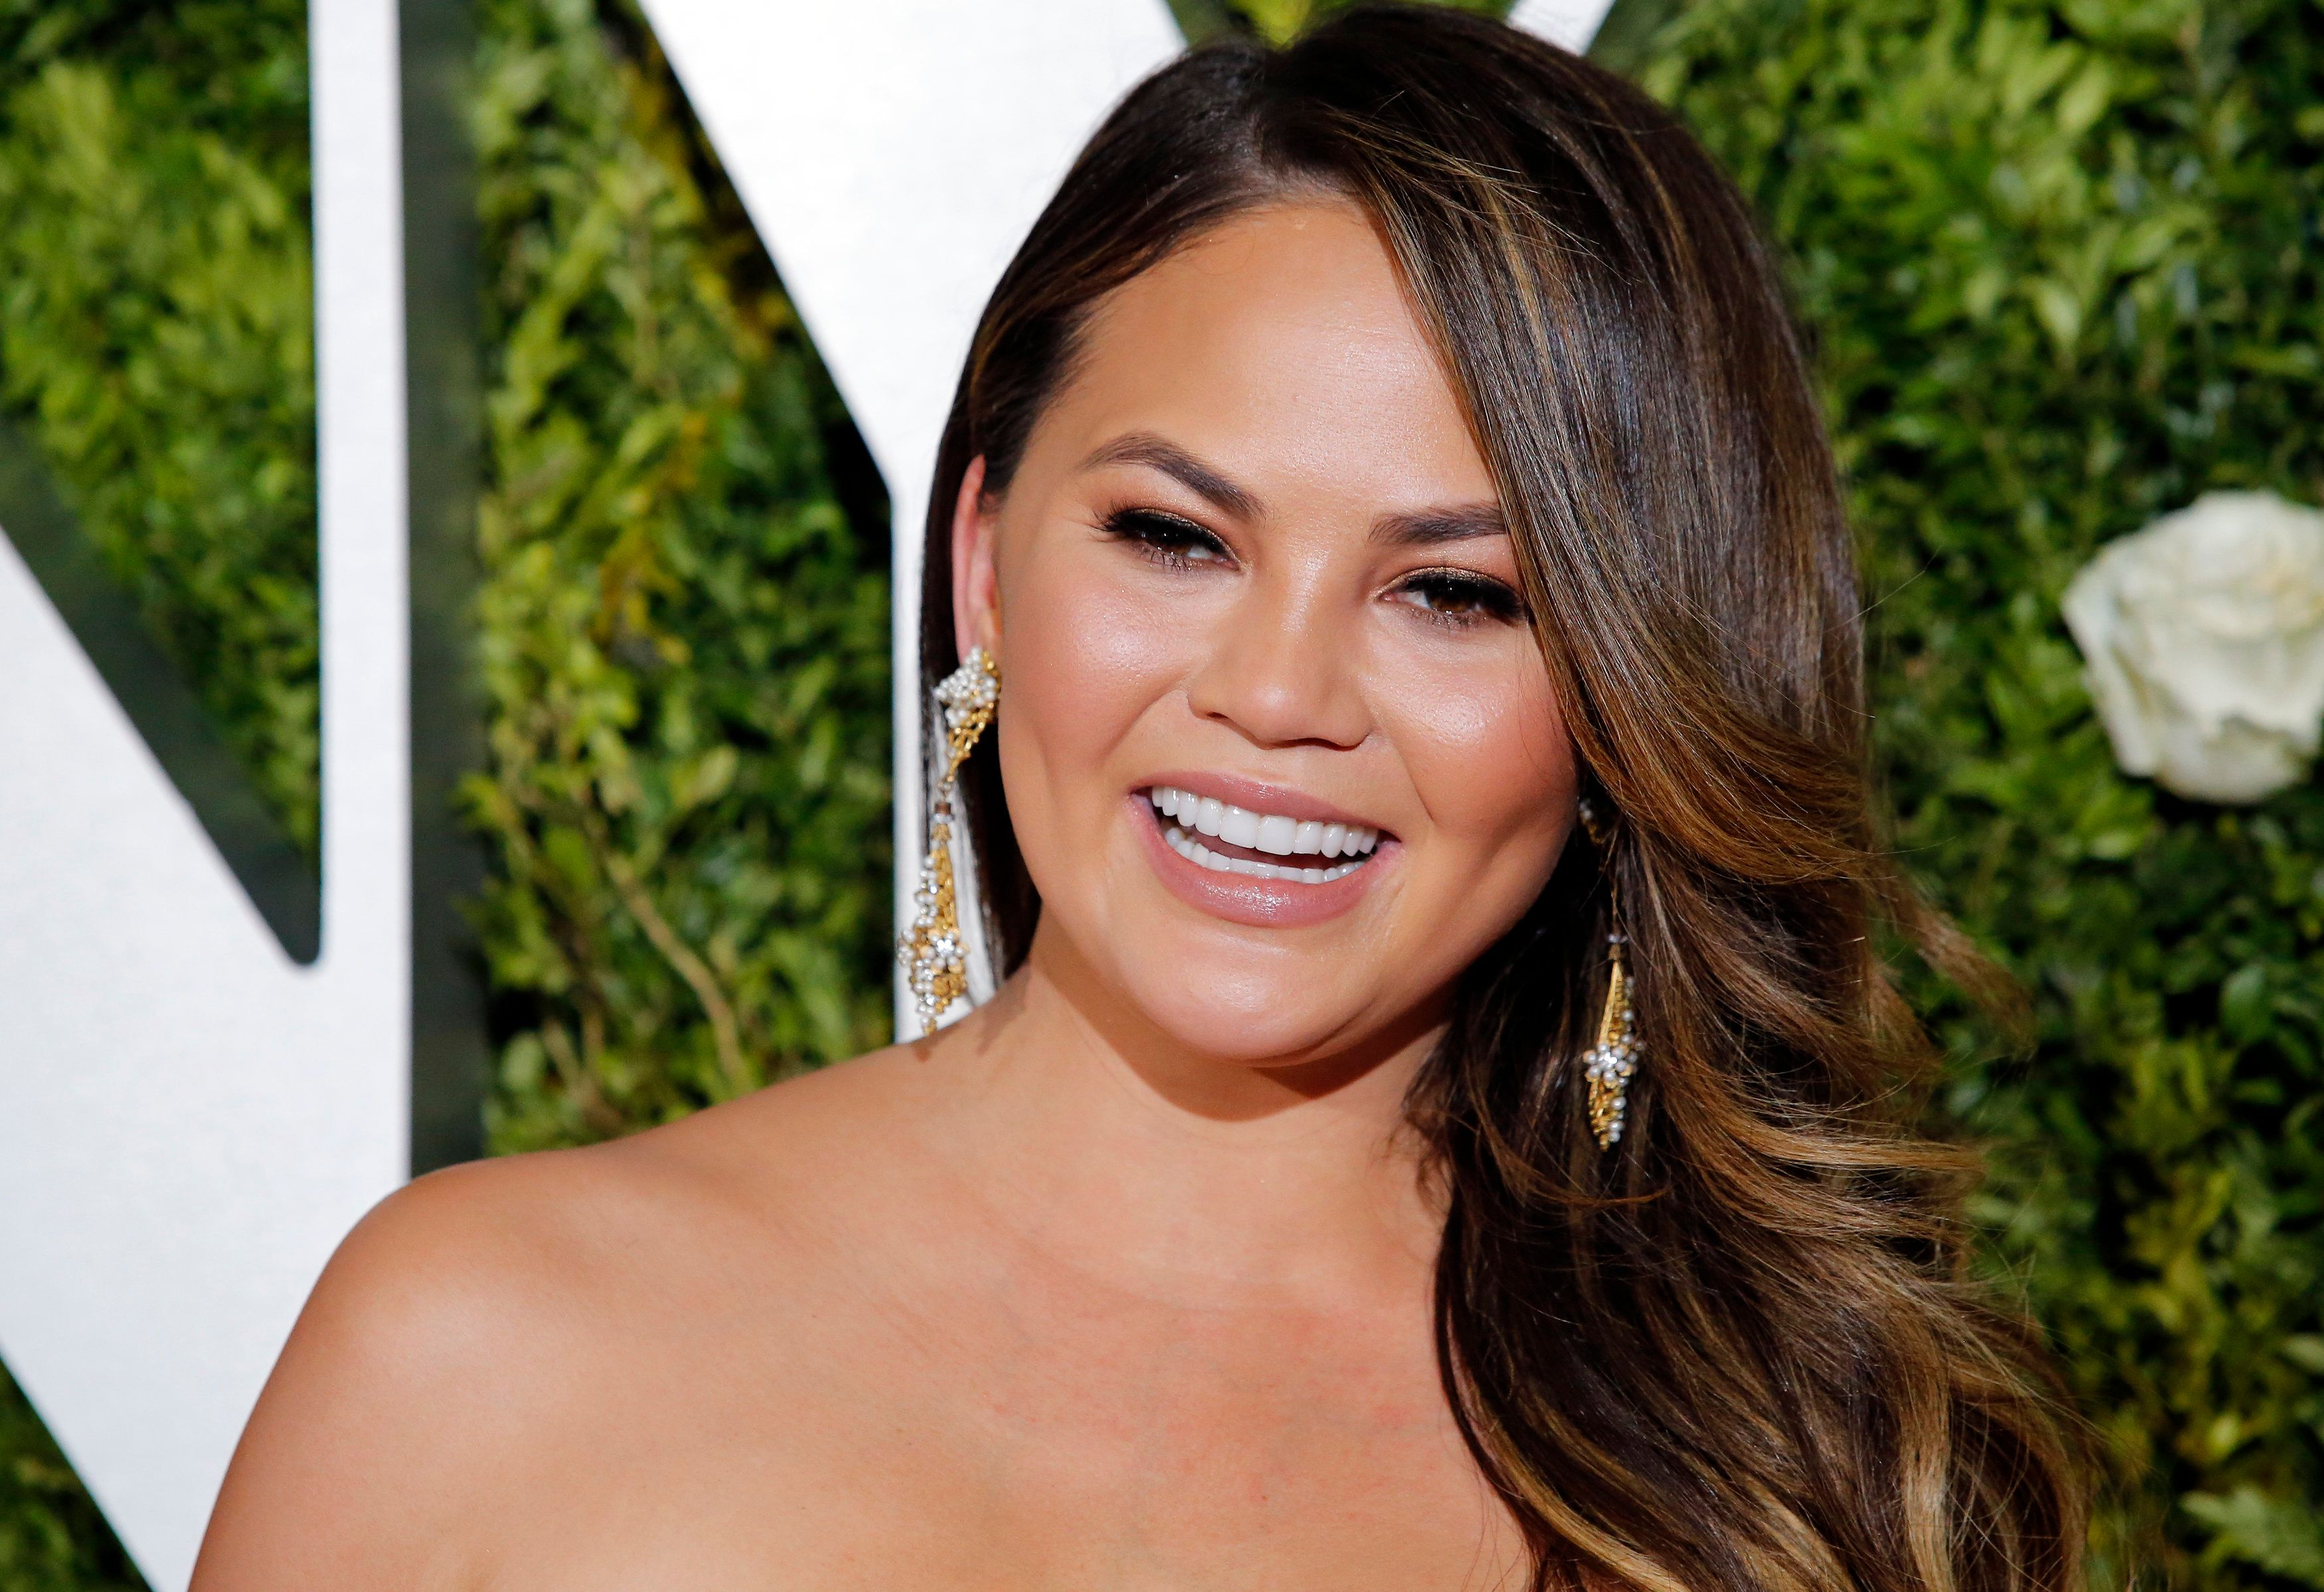 71st Tony Awards – Arrivals – New York City, U.S., 11/06/2017 - Chrissy Teigen. REUTERS/Eduardo Munoz Alvarez